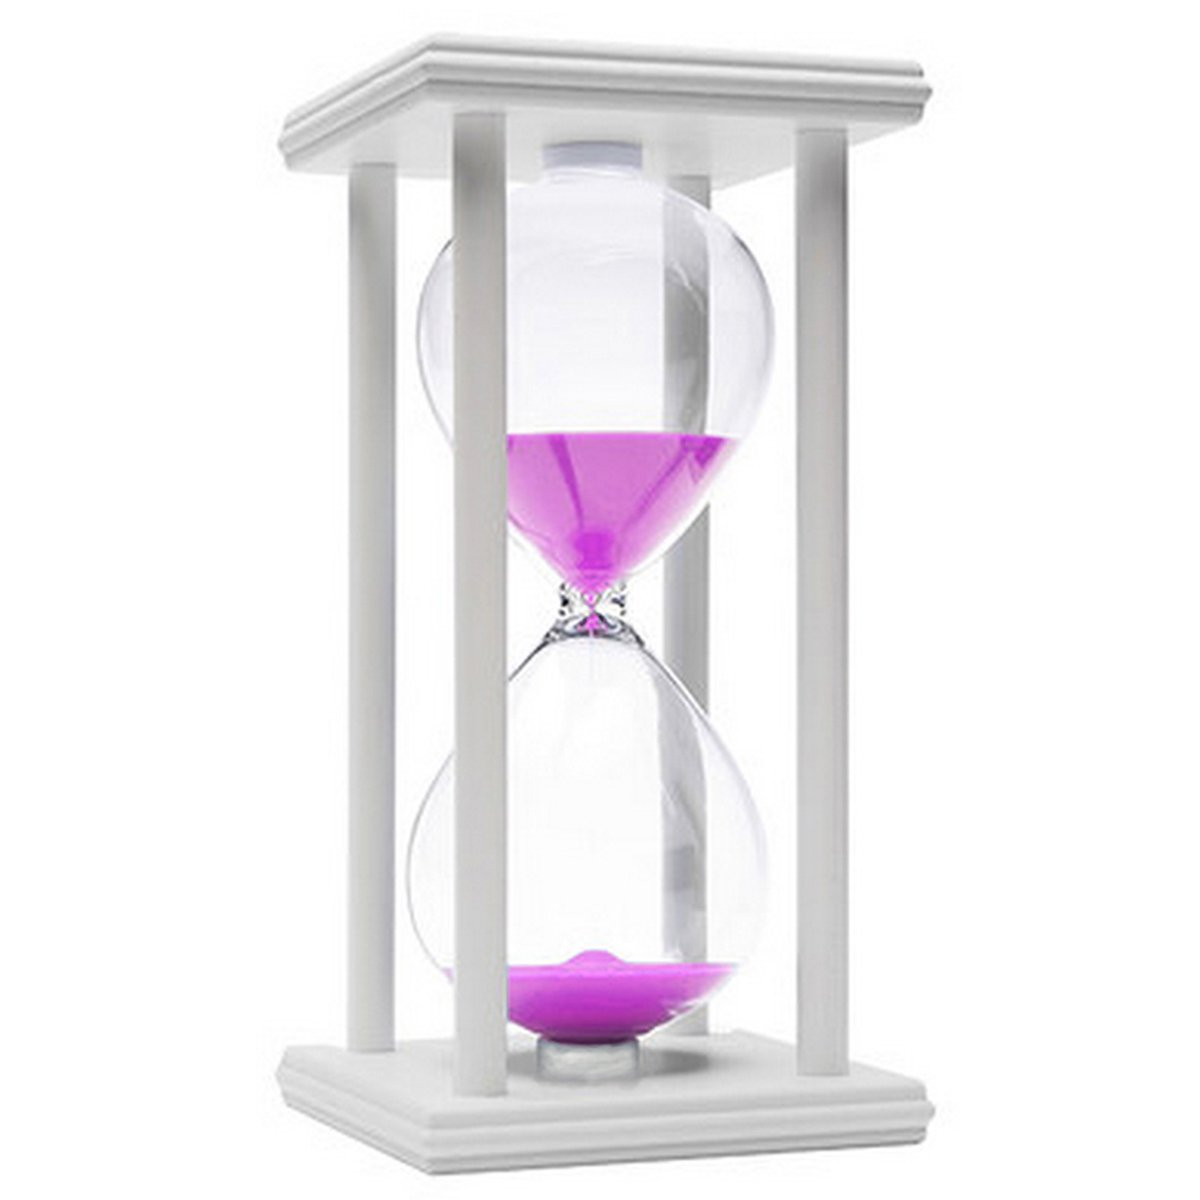 60 Minutes Hourglass, iPhyhe One Hour Sand Timer with White Wooden Frame (Pink Sand)